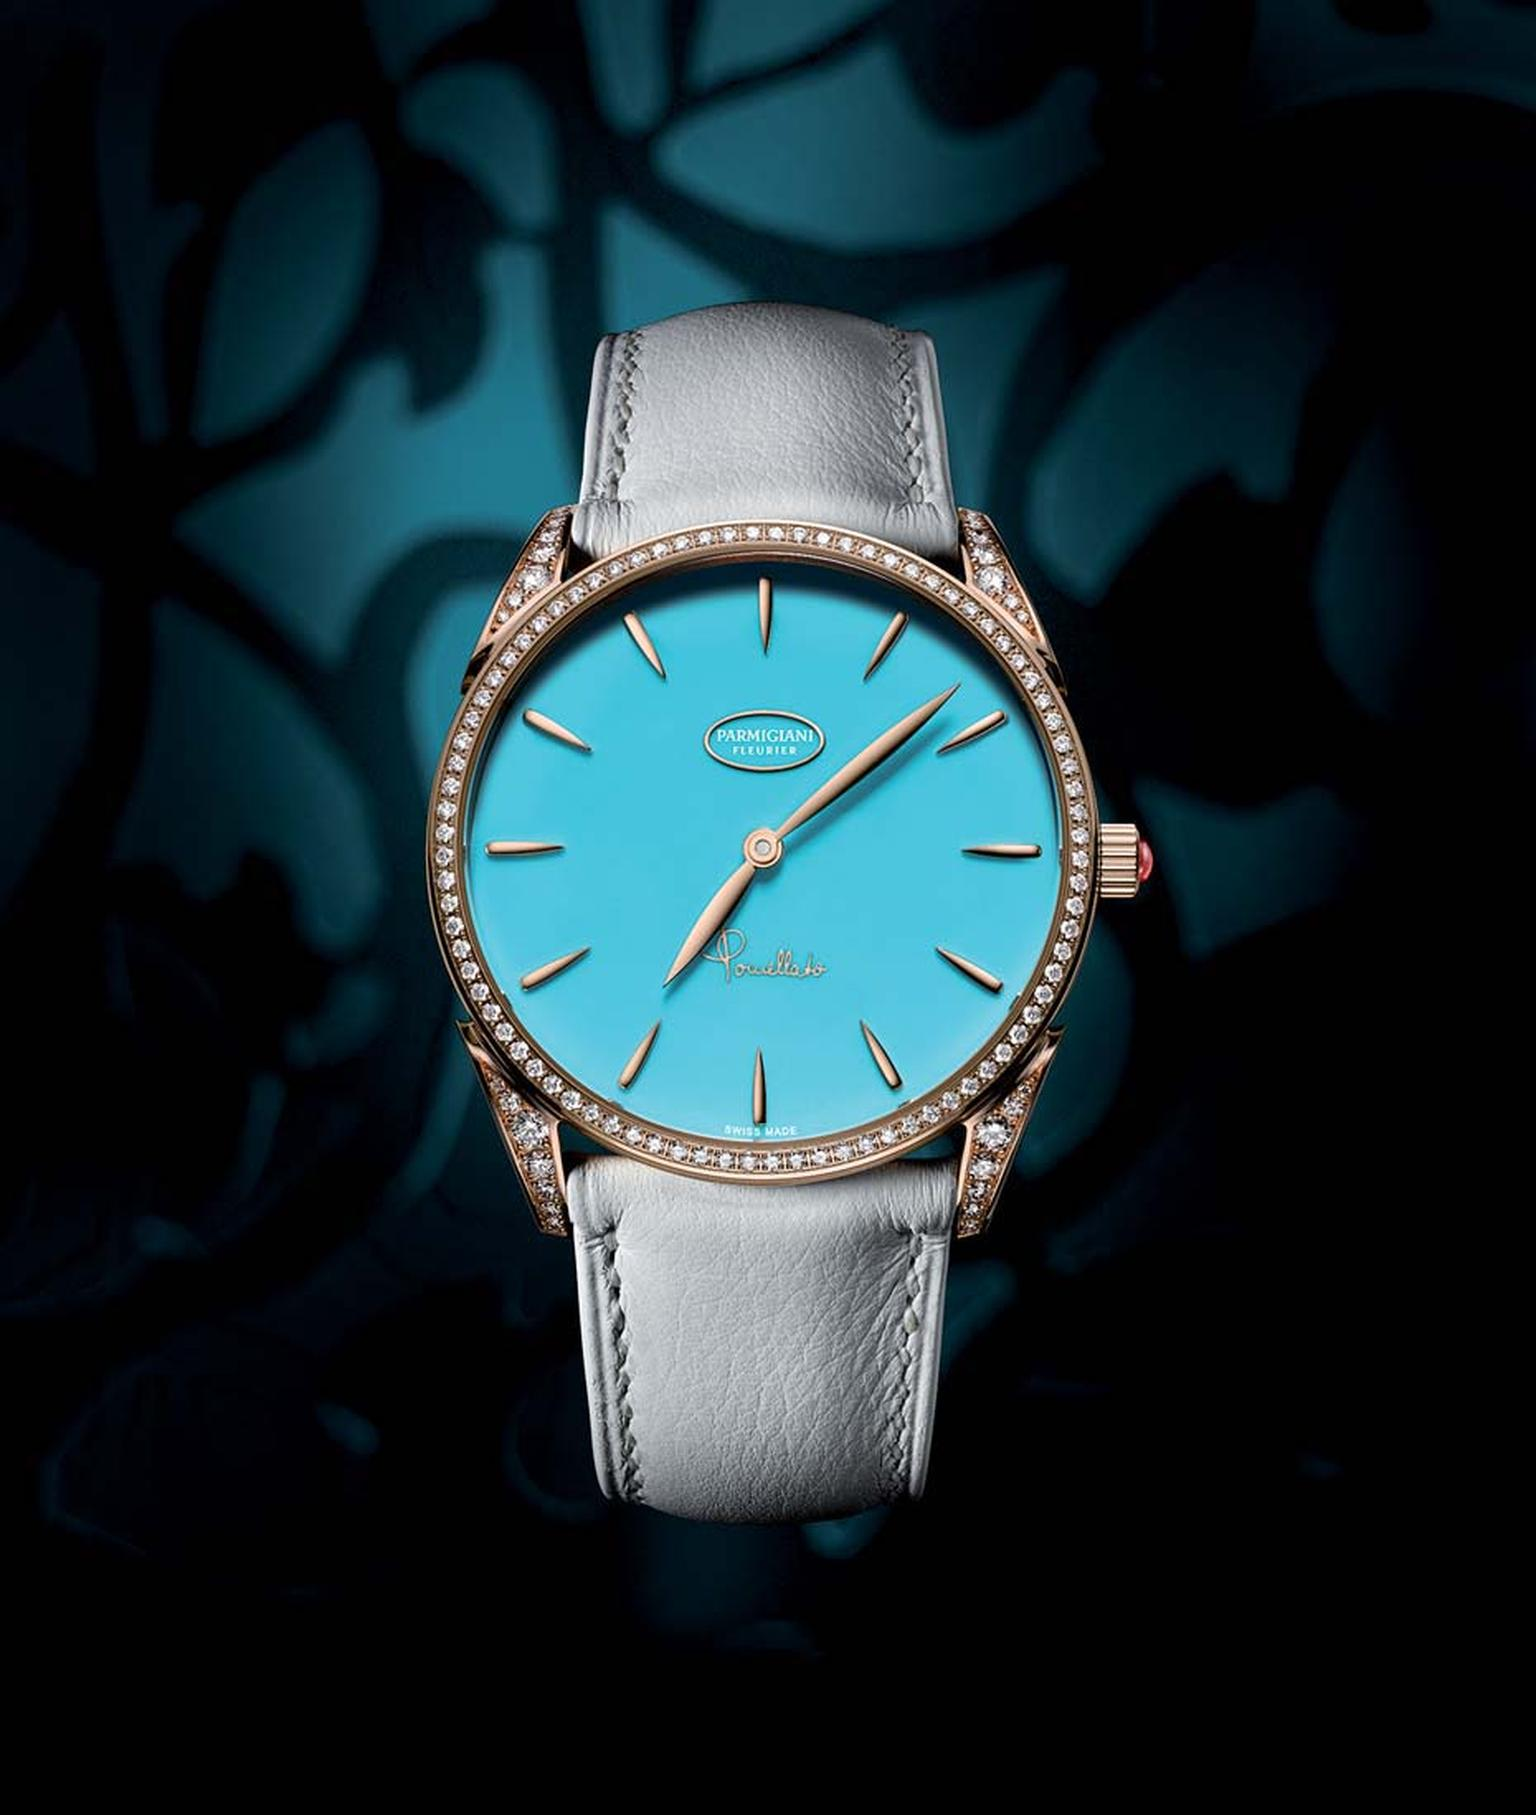 Tonda Pomellato watch with a turquoise stone dial